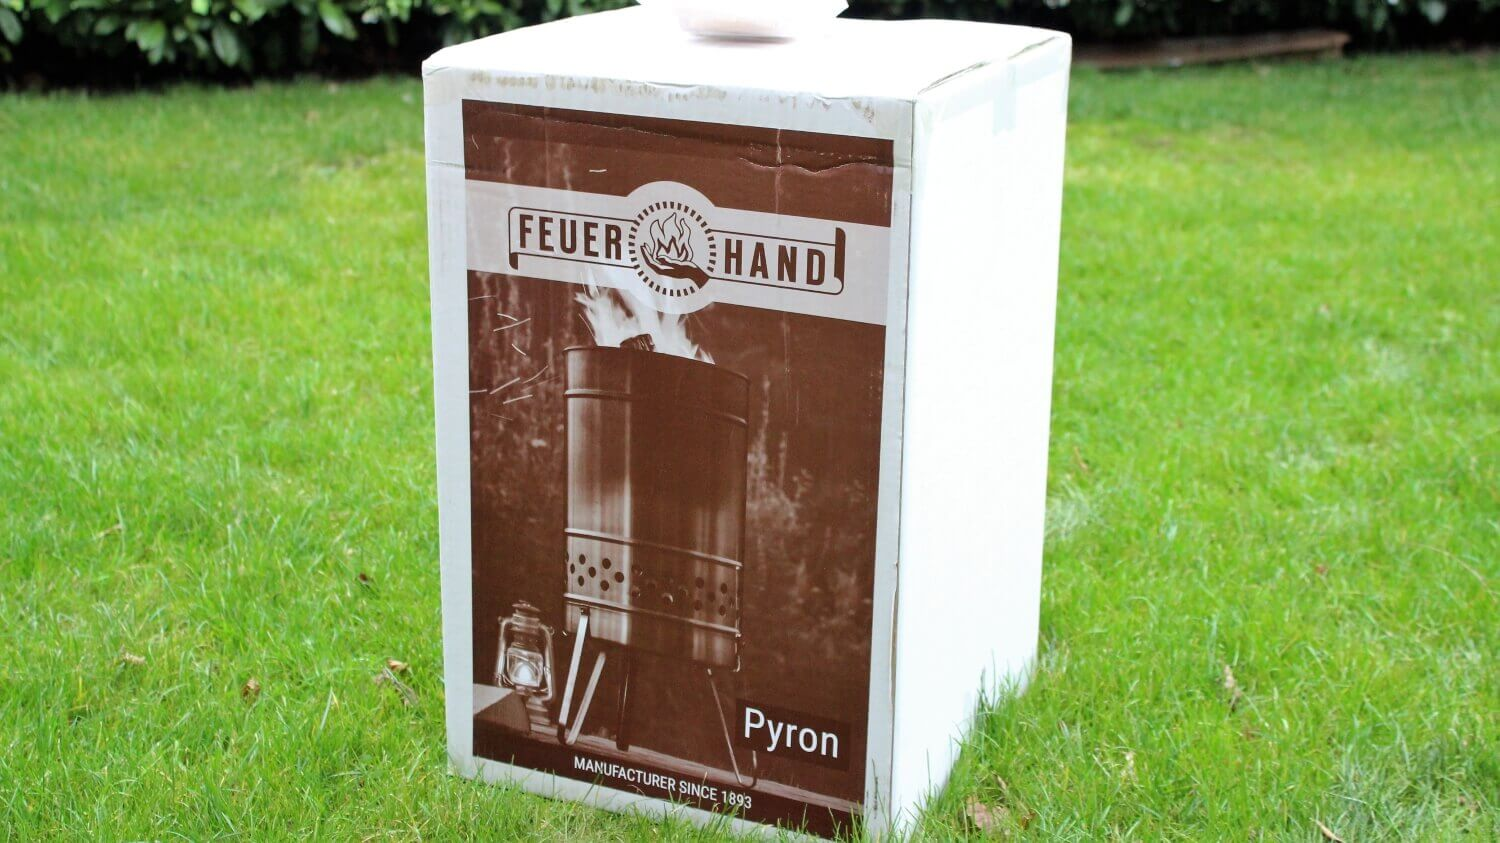 Verpackung Feuerhand Pyron